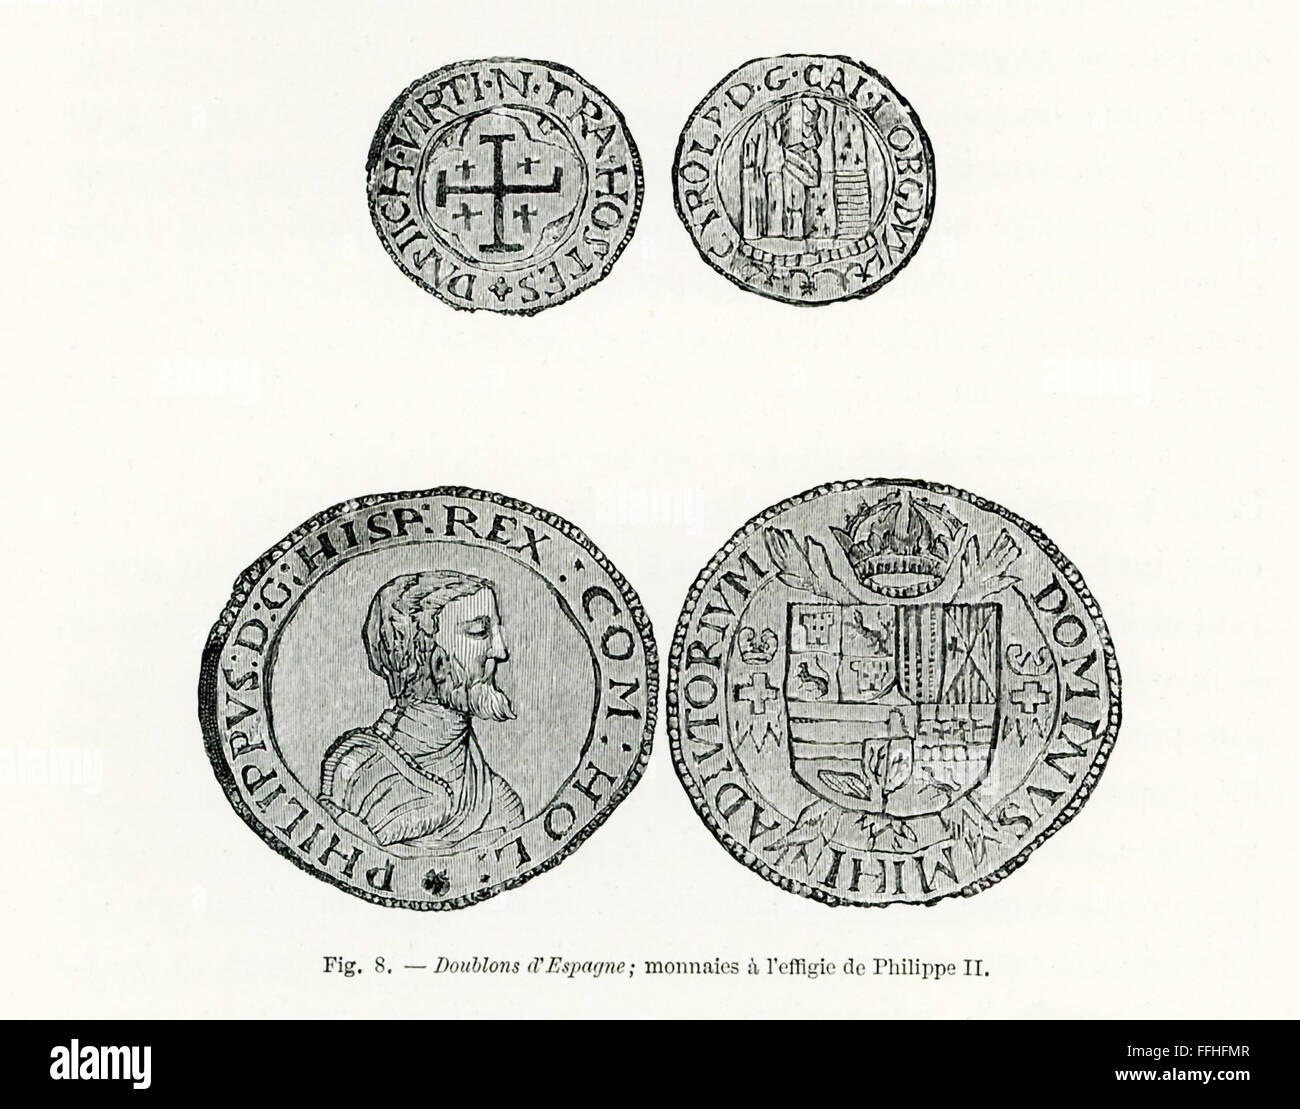 Shown here are late 1800s engravings of Spanish doubloons. The portrait here is Philip II of Spain. He ruled Spain - Stock Image